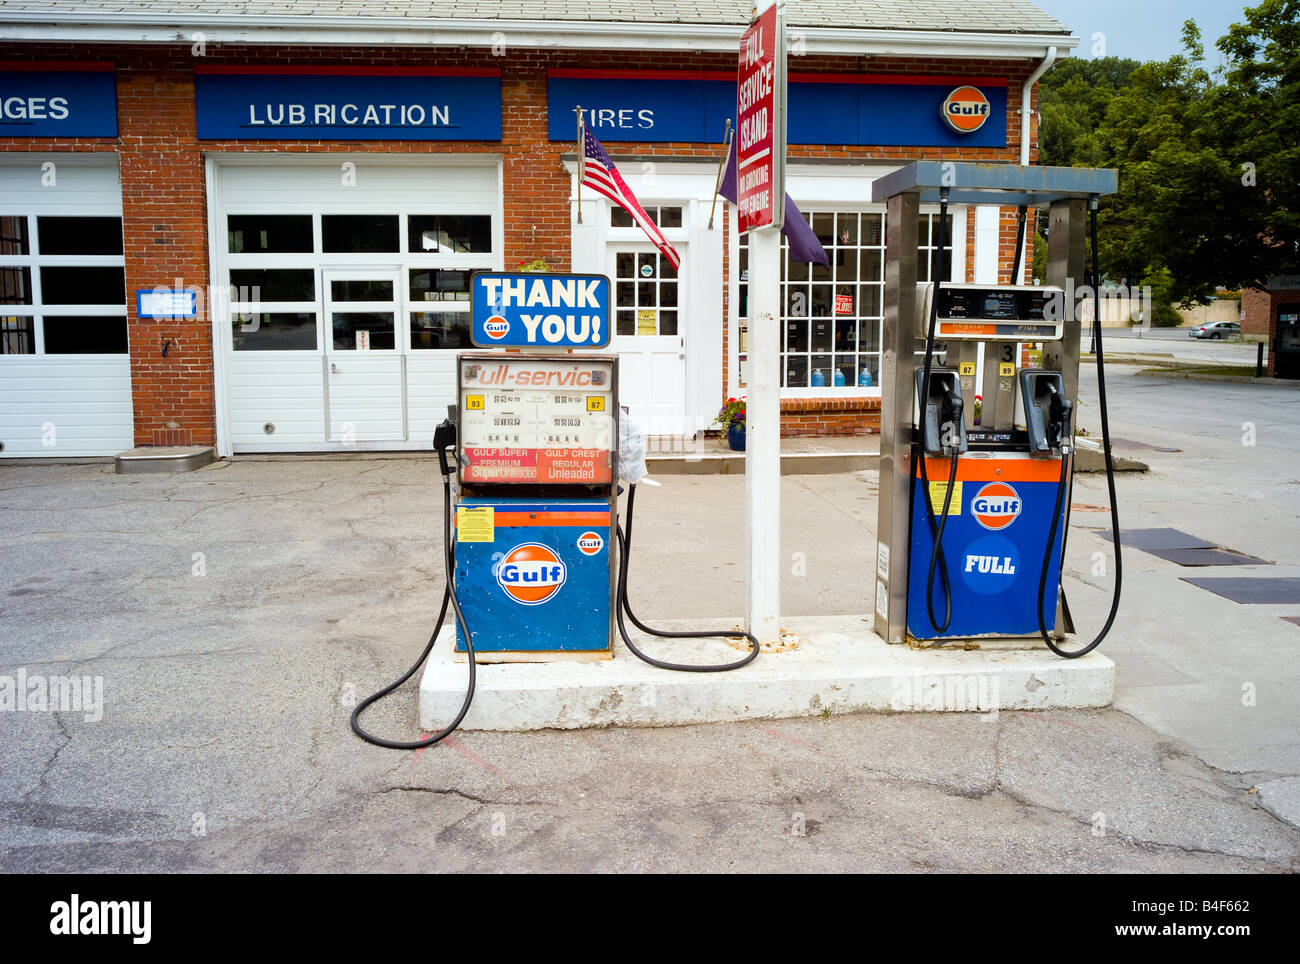 Gulf Gas Station Near Me >> An Old Gulf Gas Station With Outdated Pumps Stock Photo